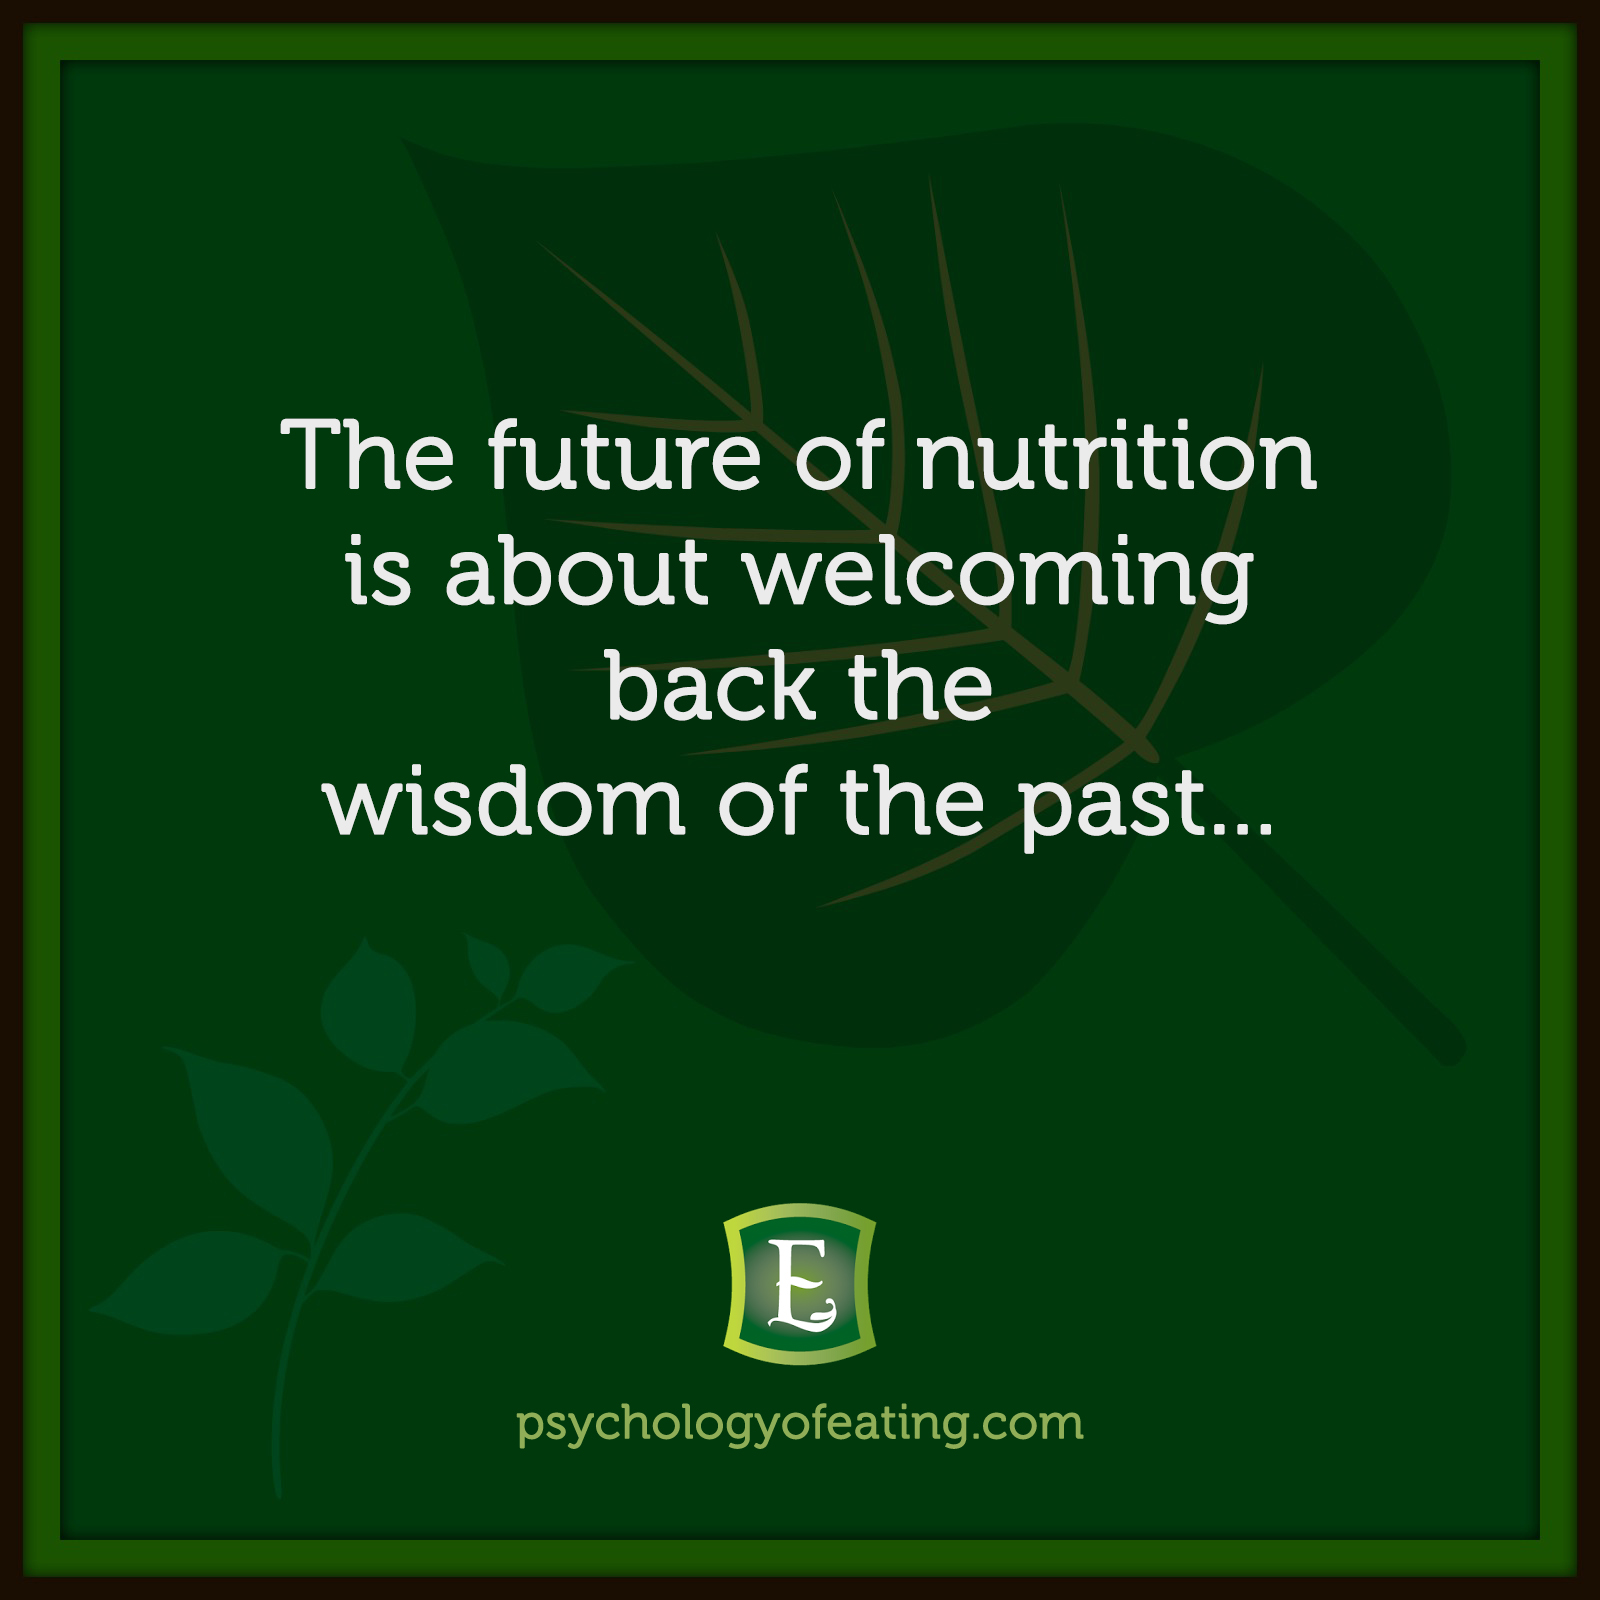 The future of nutrition is about welcoming back the wisdom of the past… #health #nutrition #eatingpsychology #IPE